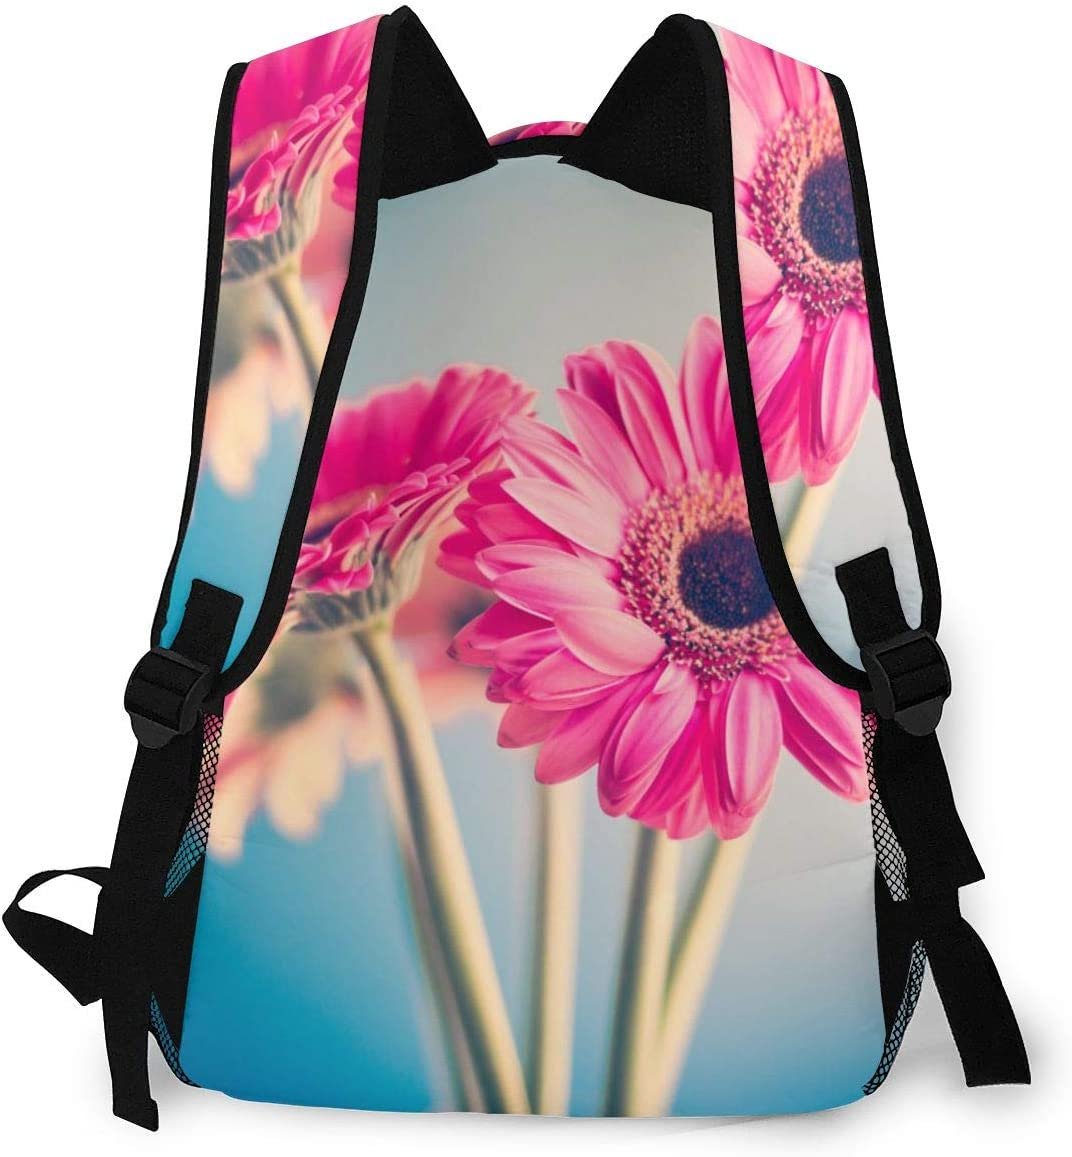 School And Traveling Fits 15.6 Inch Laptop Student Backpack Two Pink Flowers Unisex Laptop Bag Lightweight Casual Rucksack For Commuter